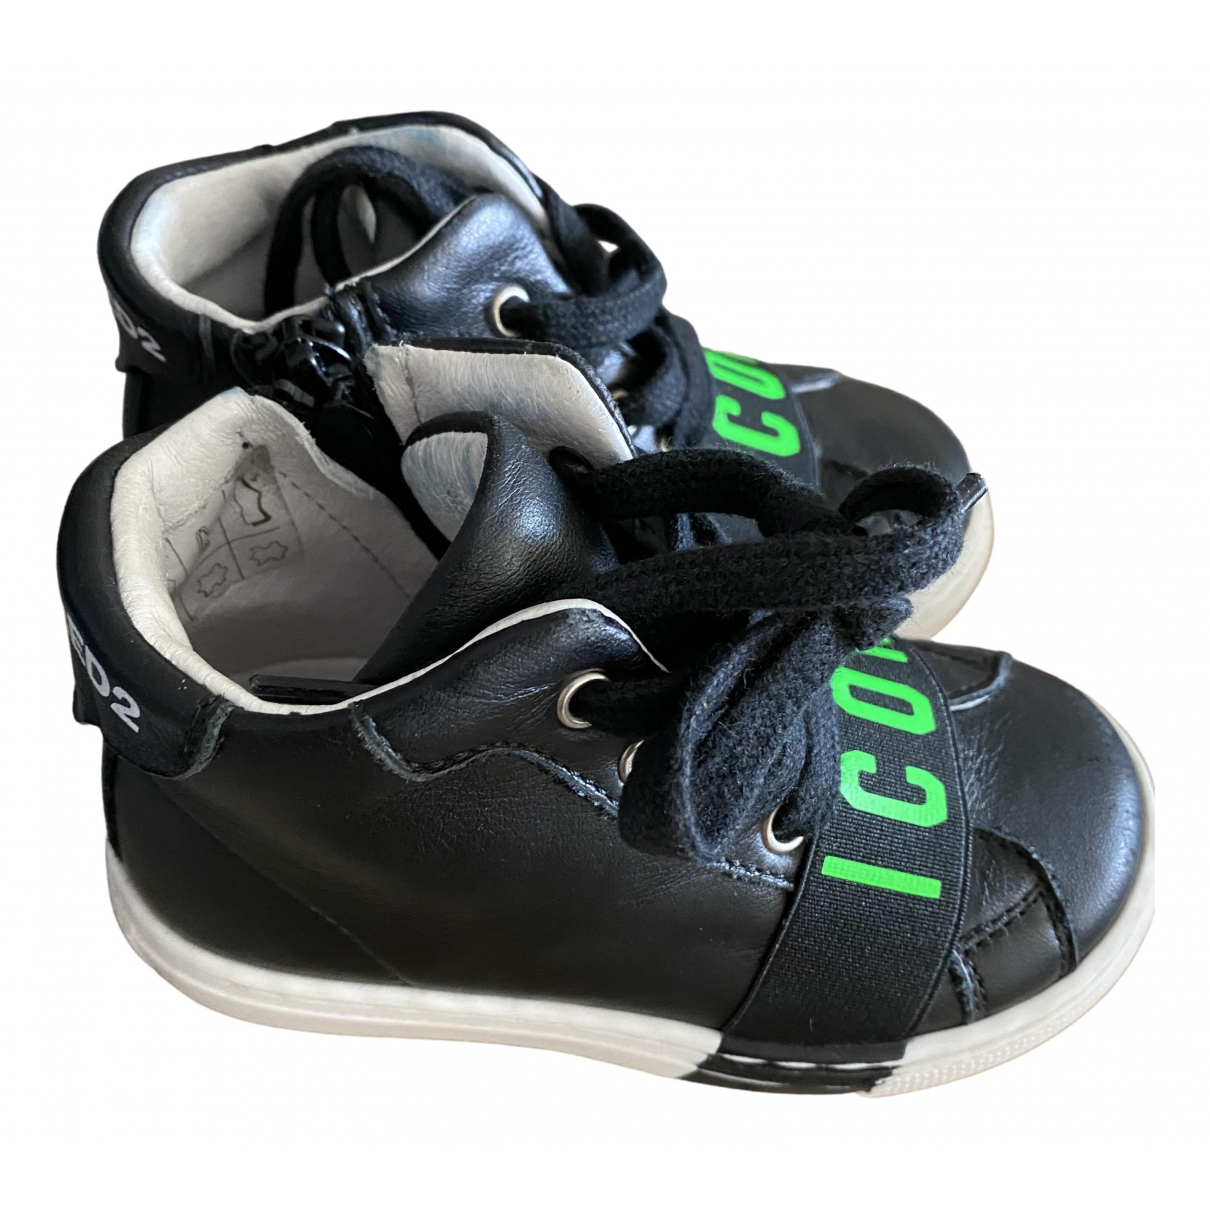 Dsquared2 N Black Leather First shoes for Kids 22 FR